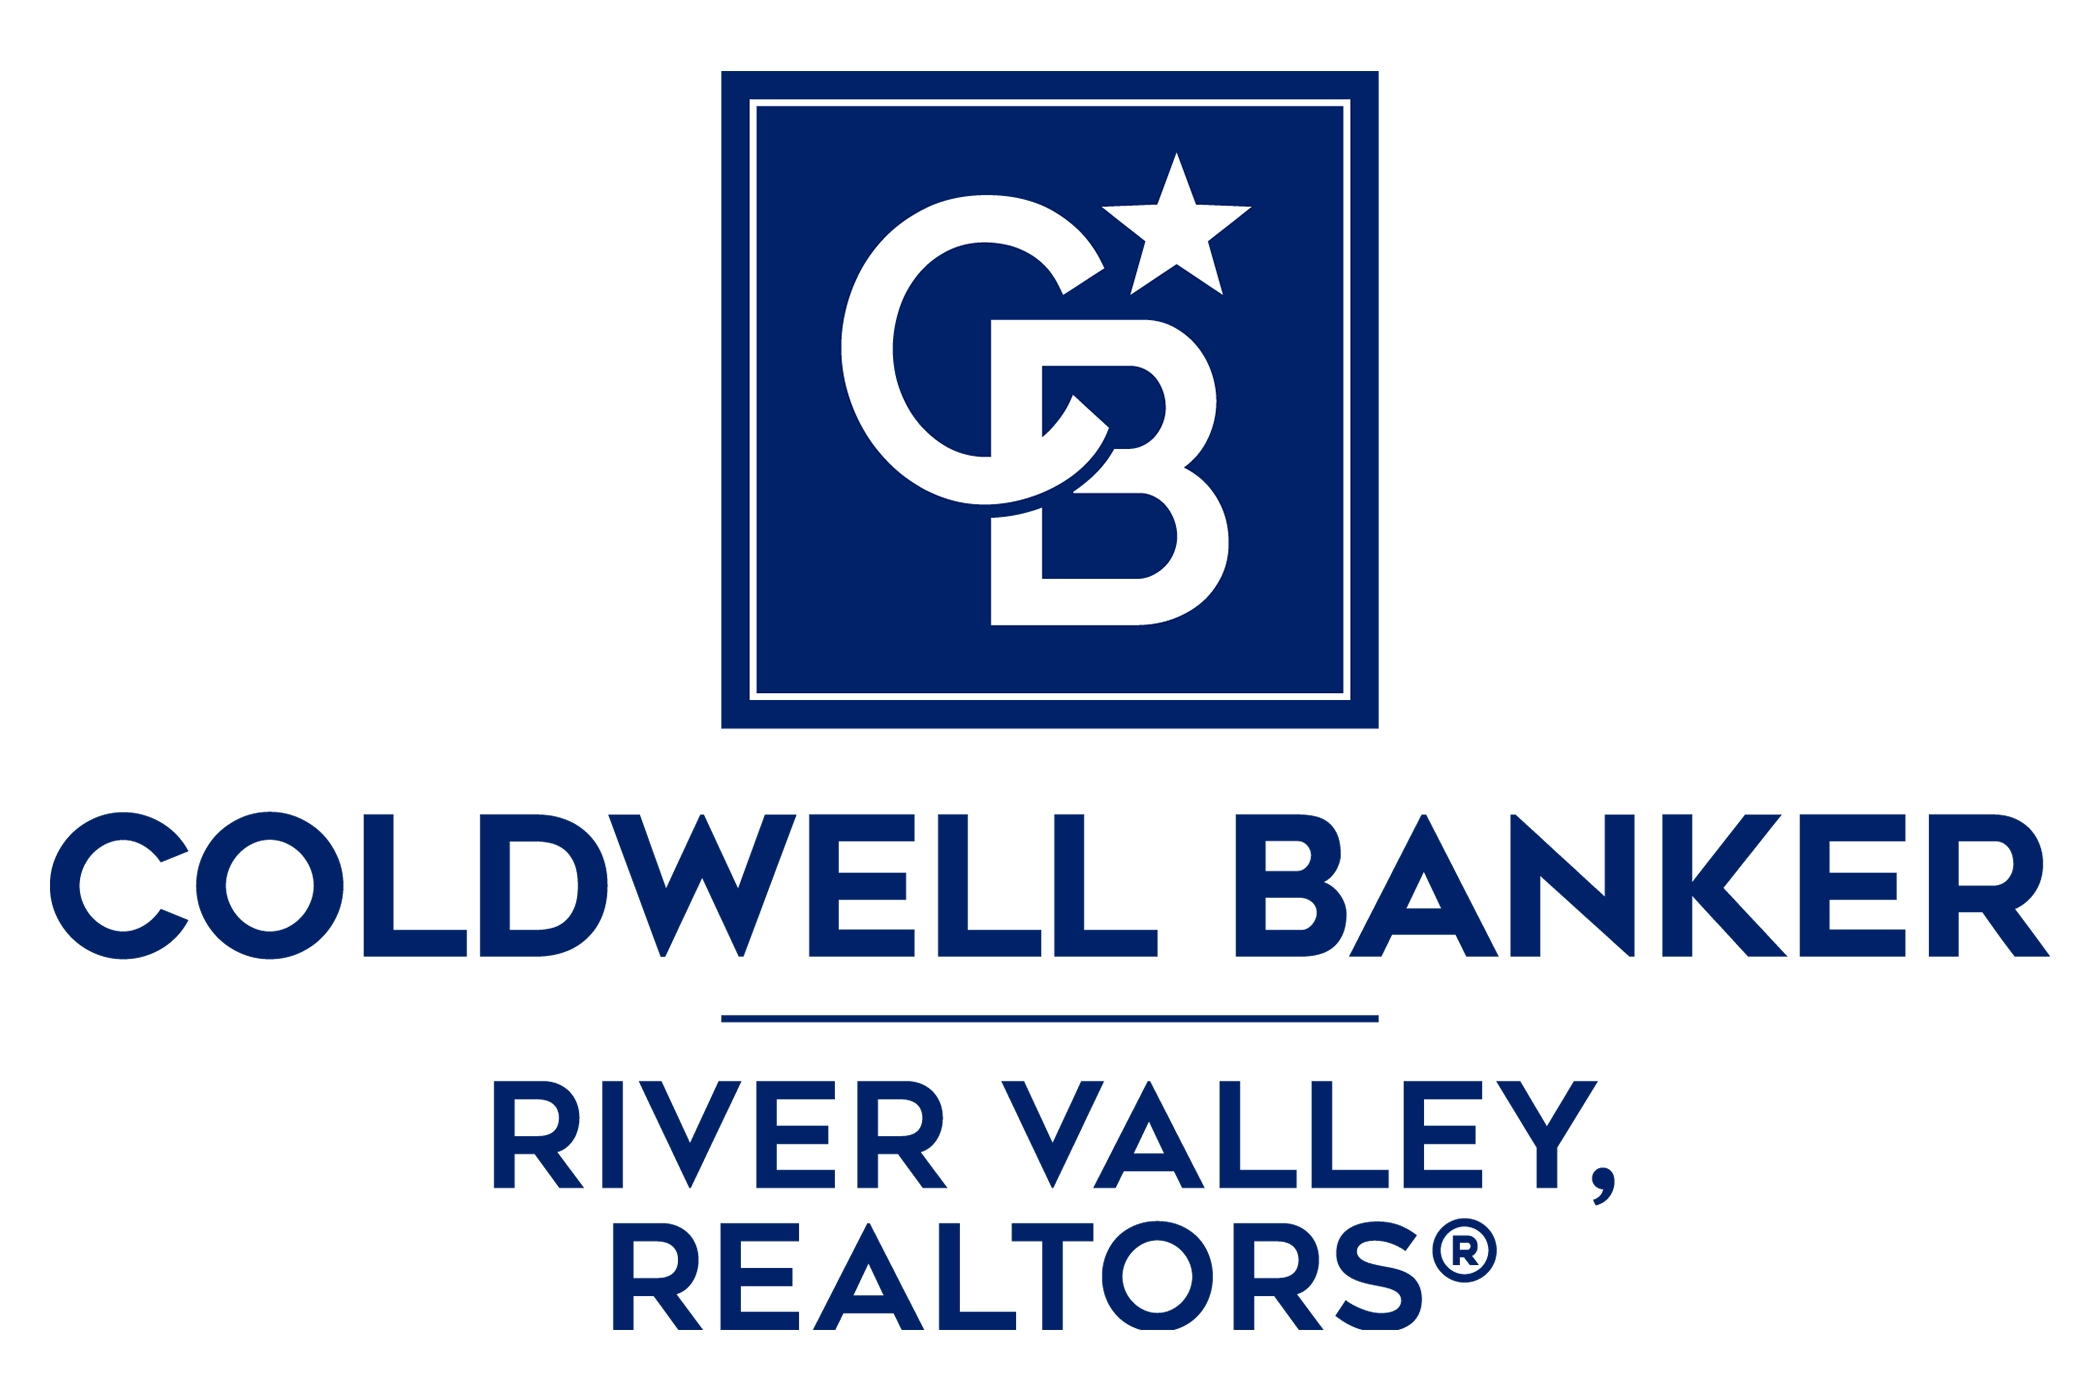 Eric Grover - Coldwell Banker River Valley Realtors